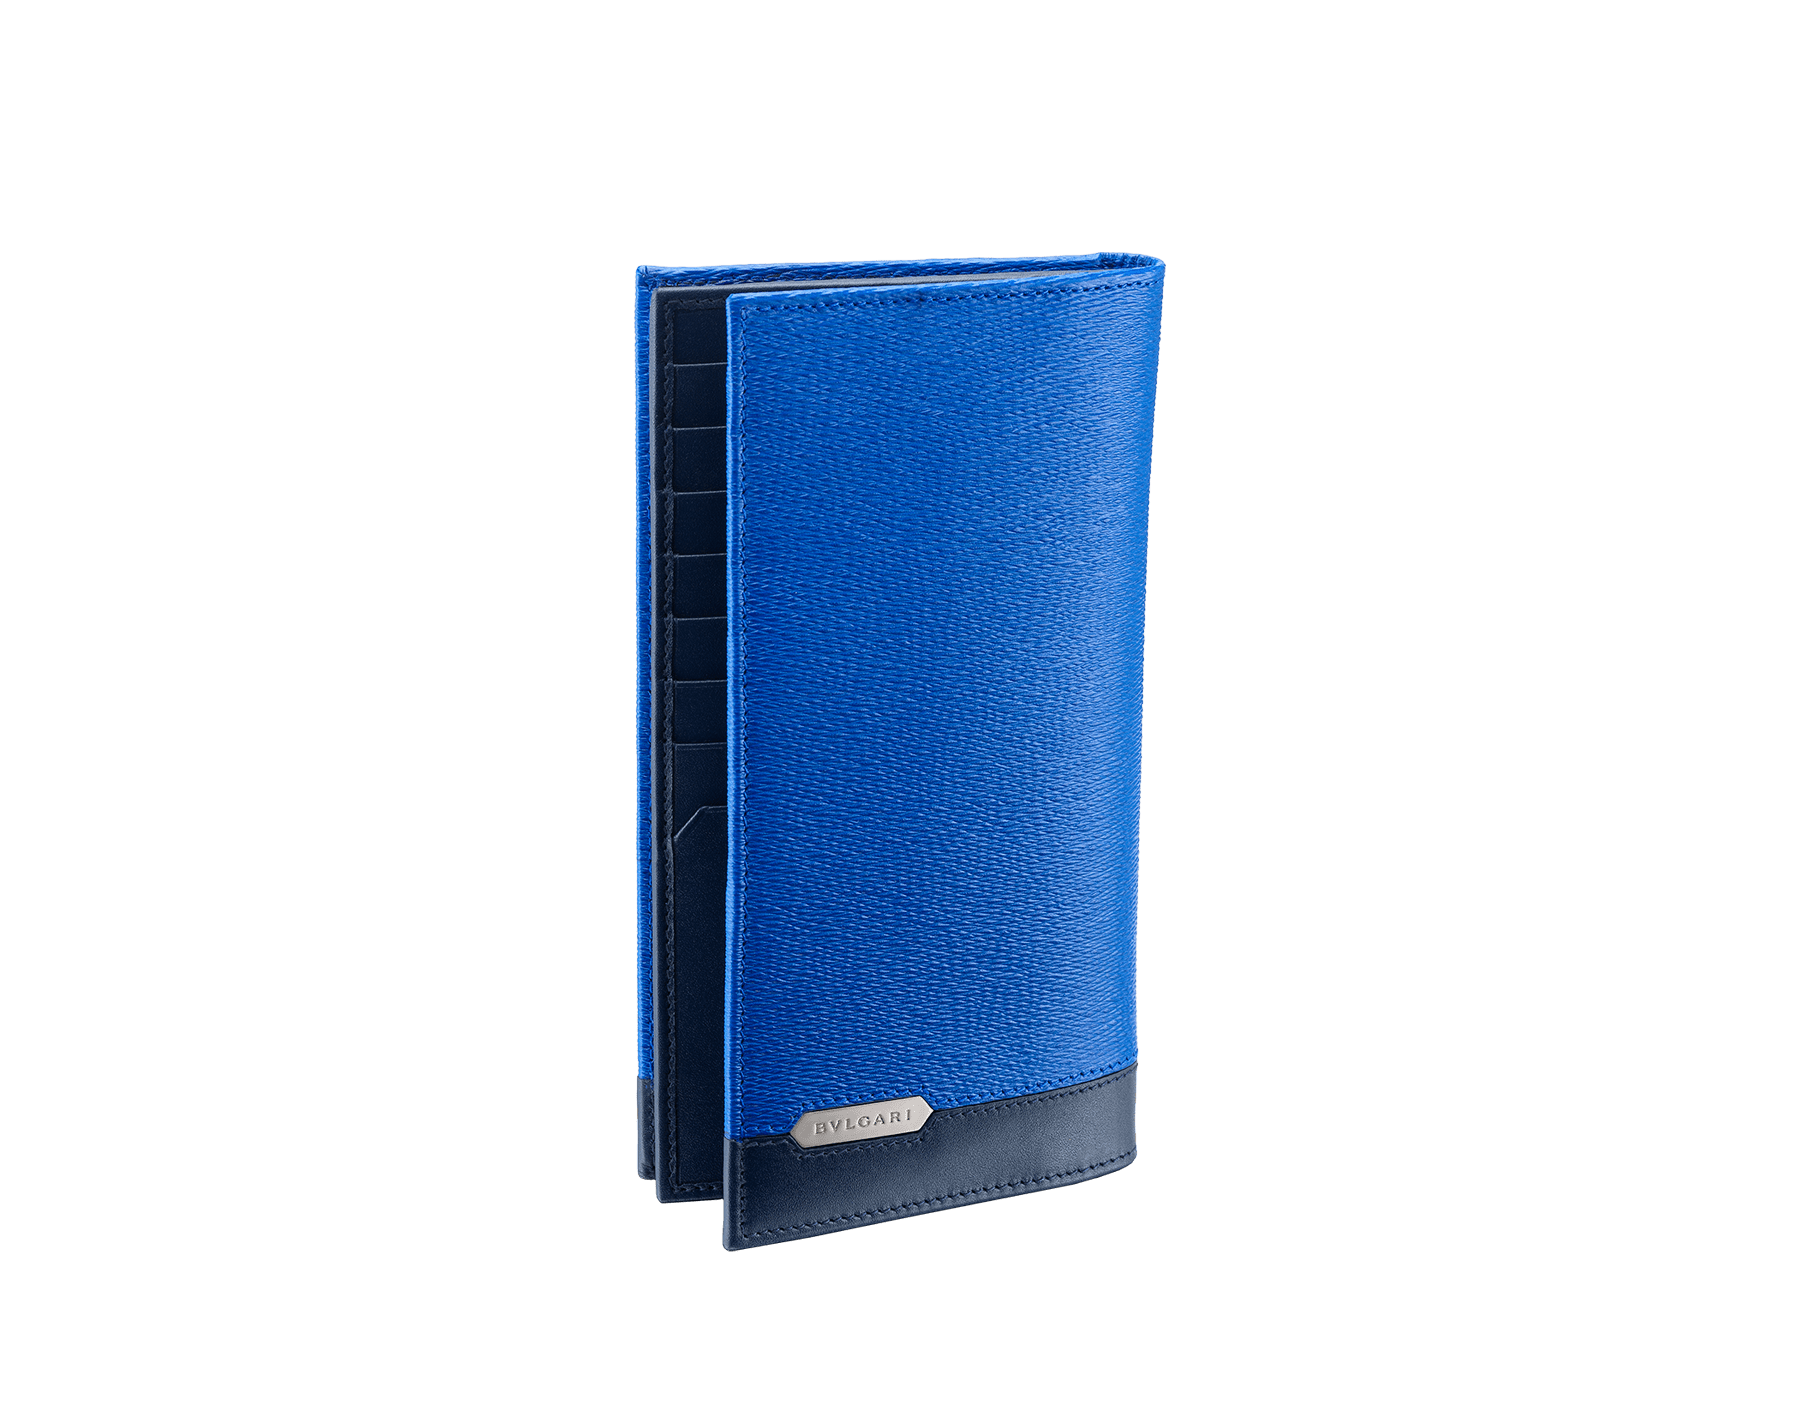 Serpenti Scaglie men's wallet for yen in cobalt tourmaline grazed calf leather with brass and denim sapphire calf leather. Bvlgari logo engraved on the hexagonal scaglie metal plate. 288462 image 1